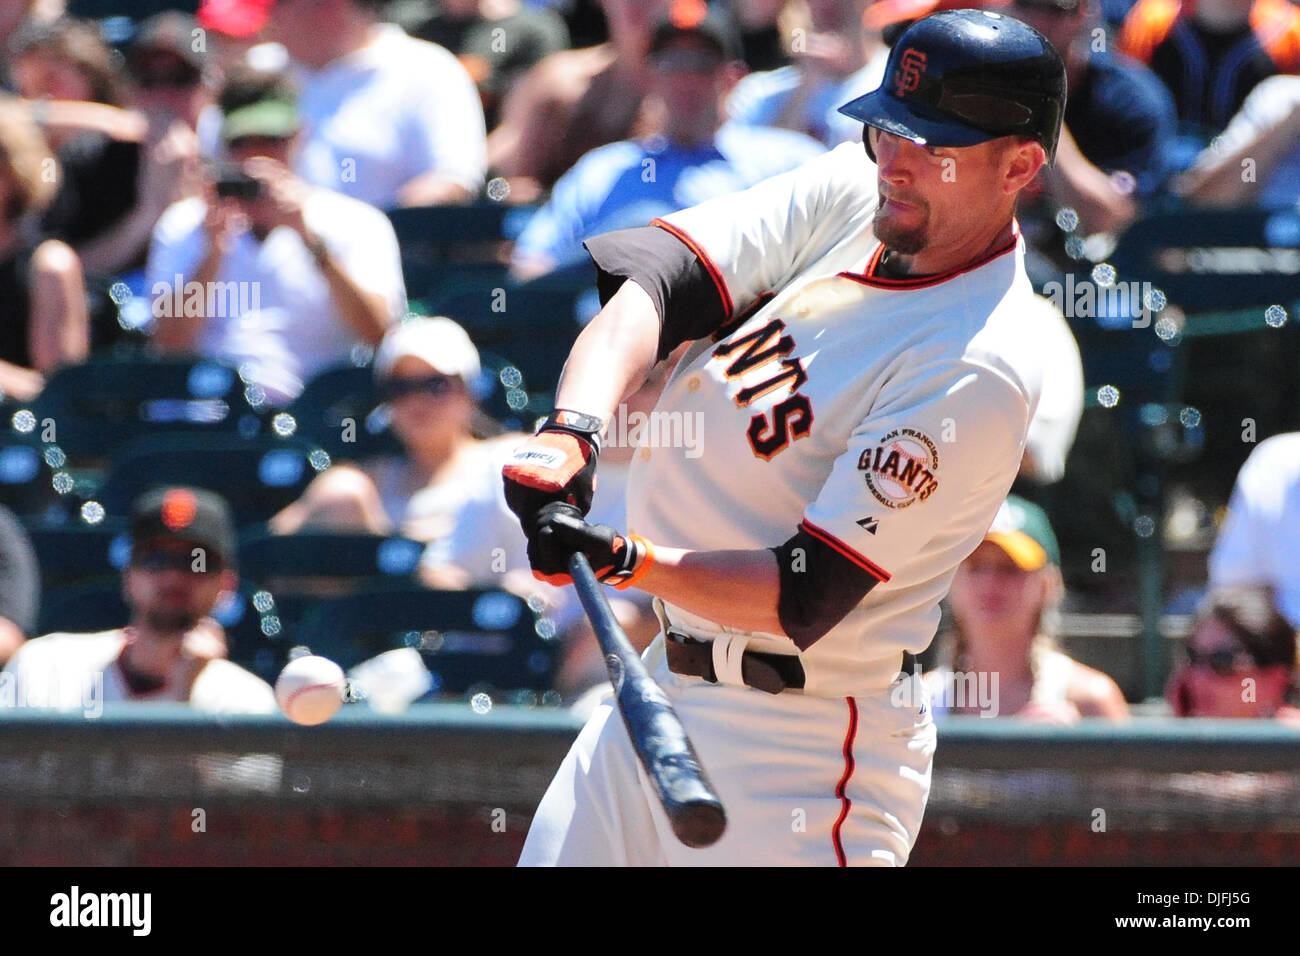 San Francisco, CA: San Francisco Giants Aubrey Huff (17) hits a home run. The Giants won the game 6-2. (Credit Image: © Charles Herskowitz/Southcreek Global/ZUMApress.com) - Stock Image